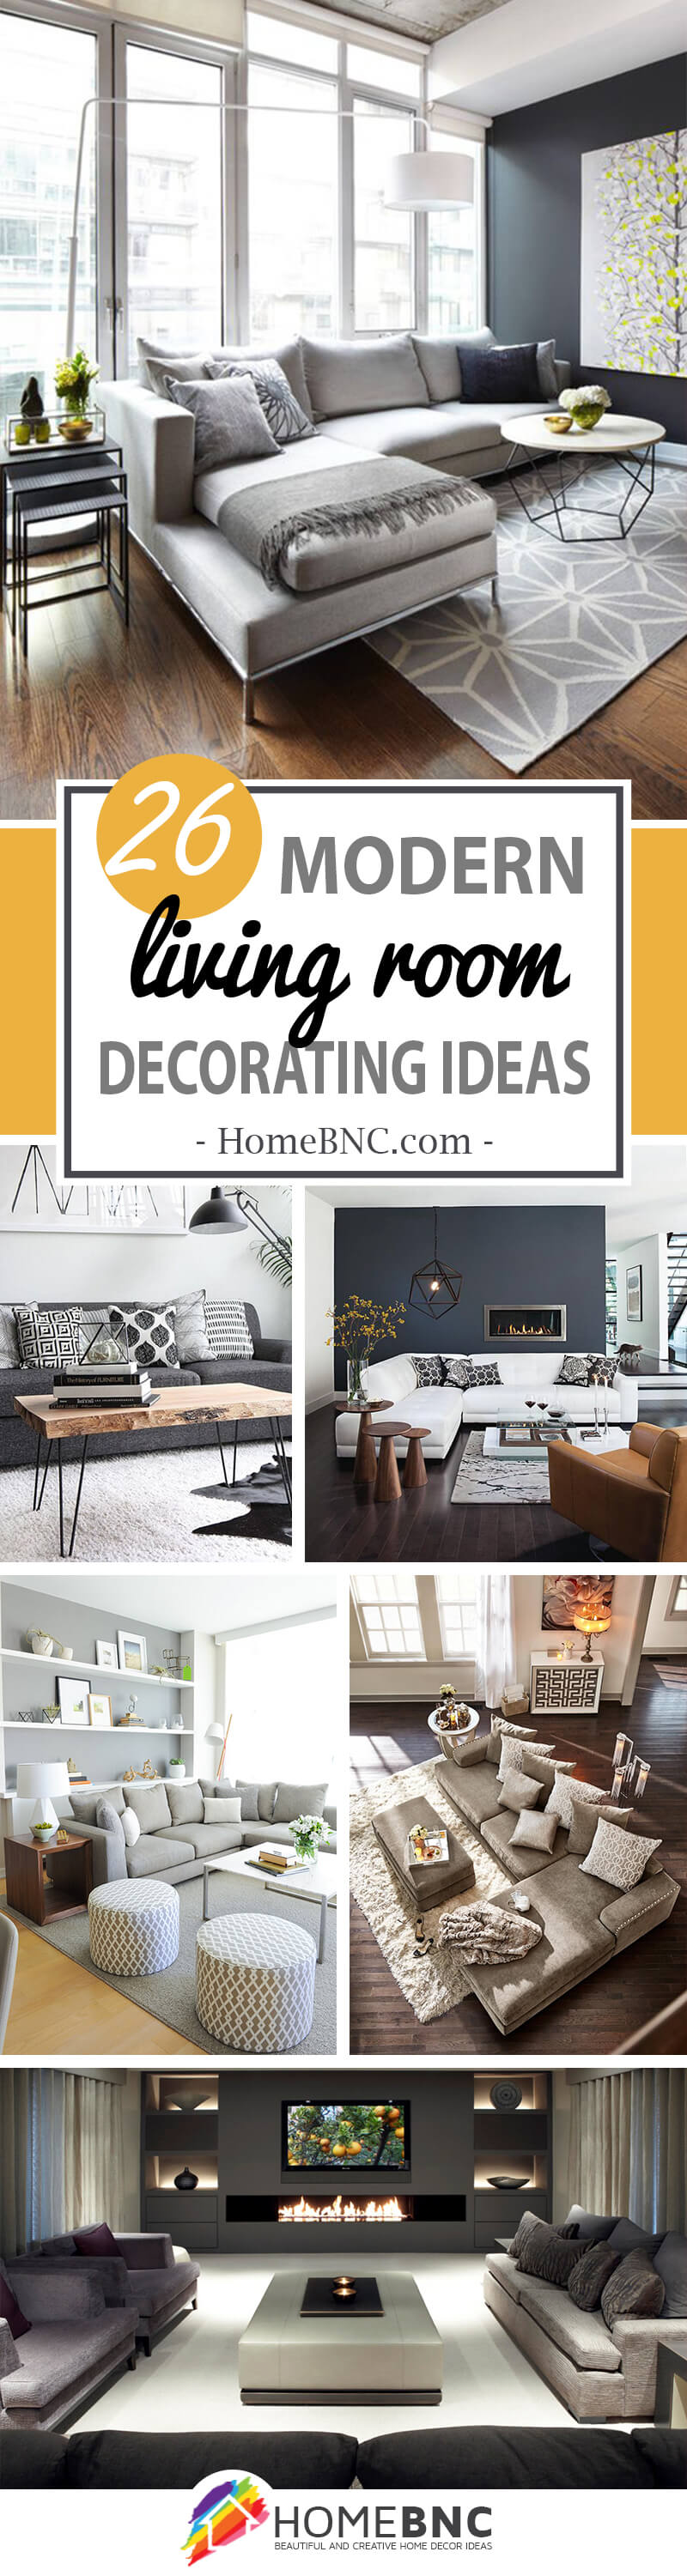 26 Best Modern Living Room Decorating Ideas and Designs for 2018